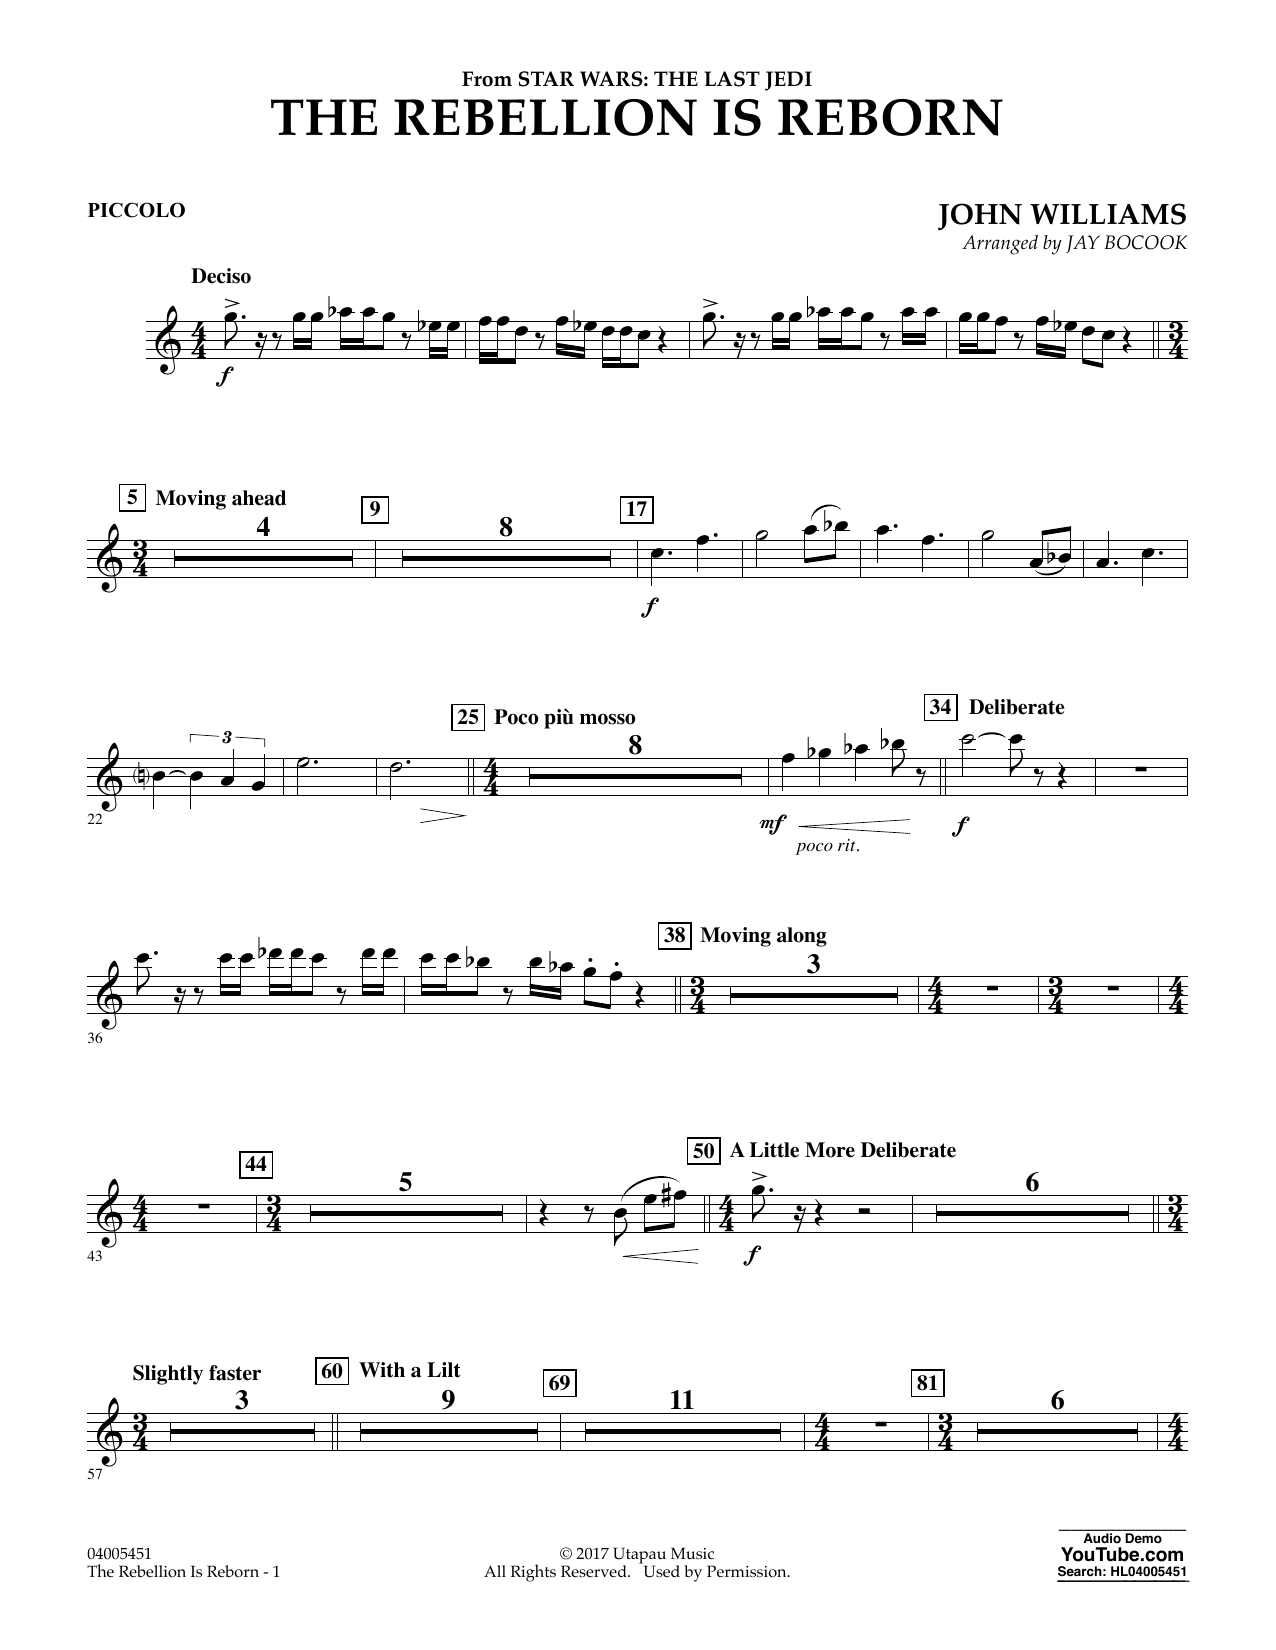 The Rebellion Is Reborn (from Star Wars: The Last Jedi) - Piccolo (Concert Band)